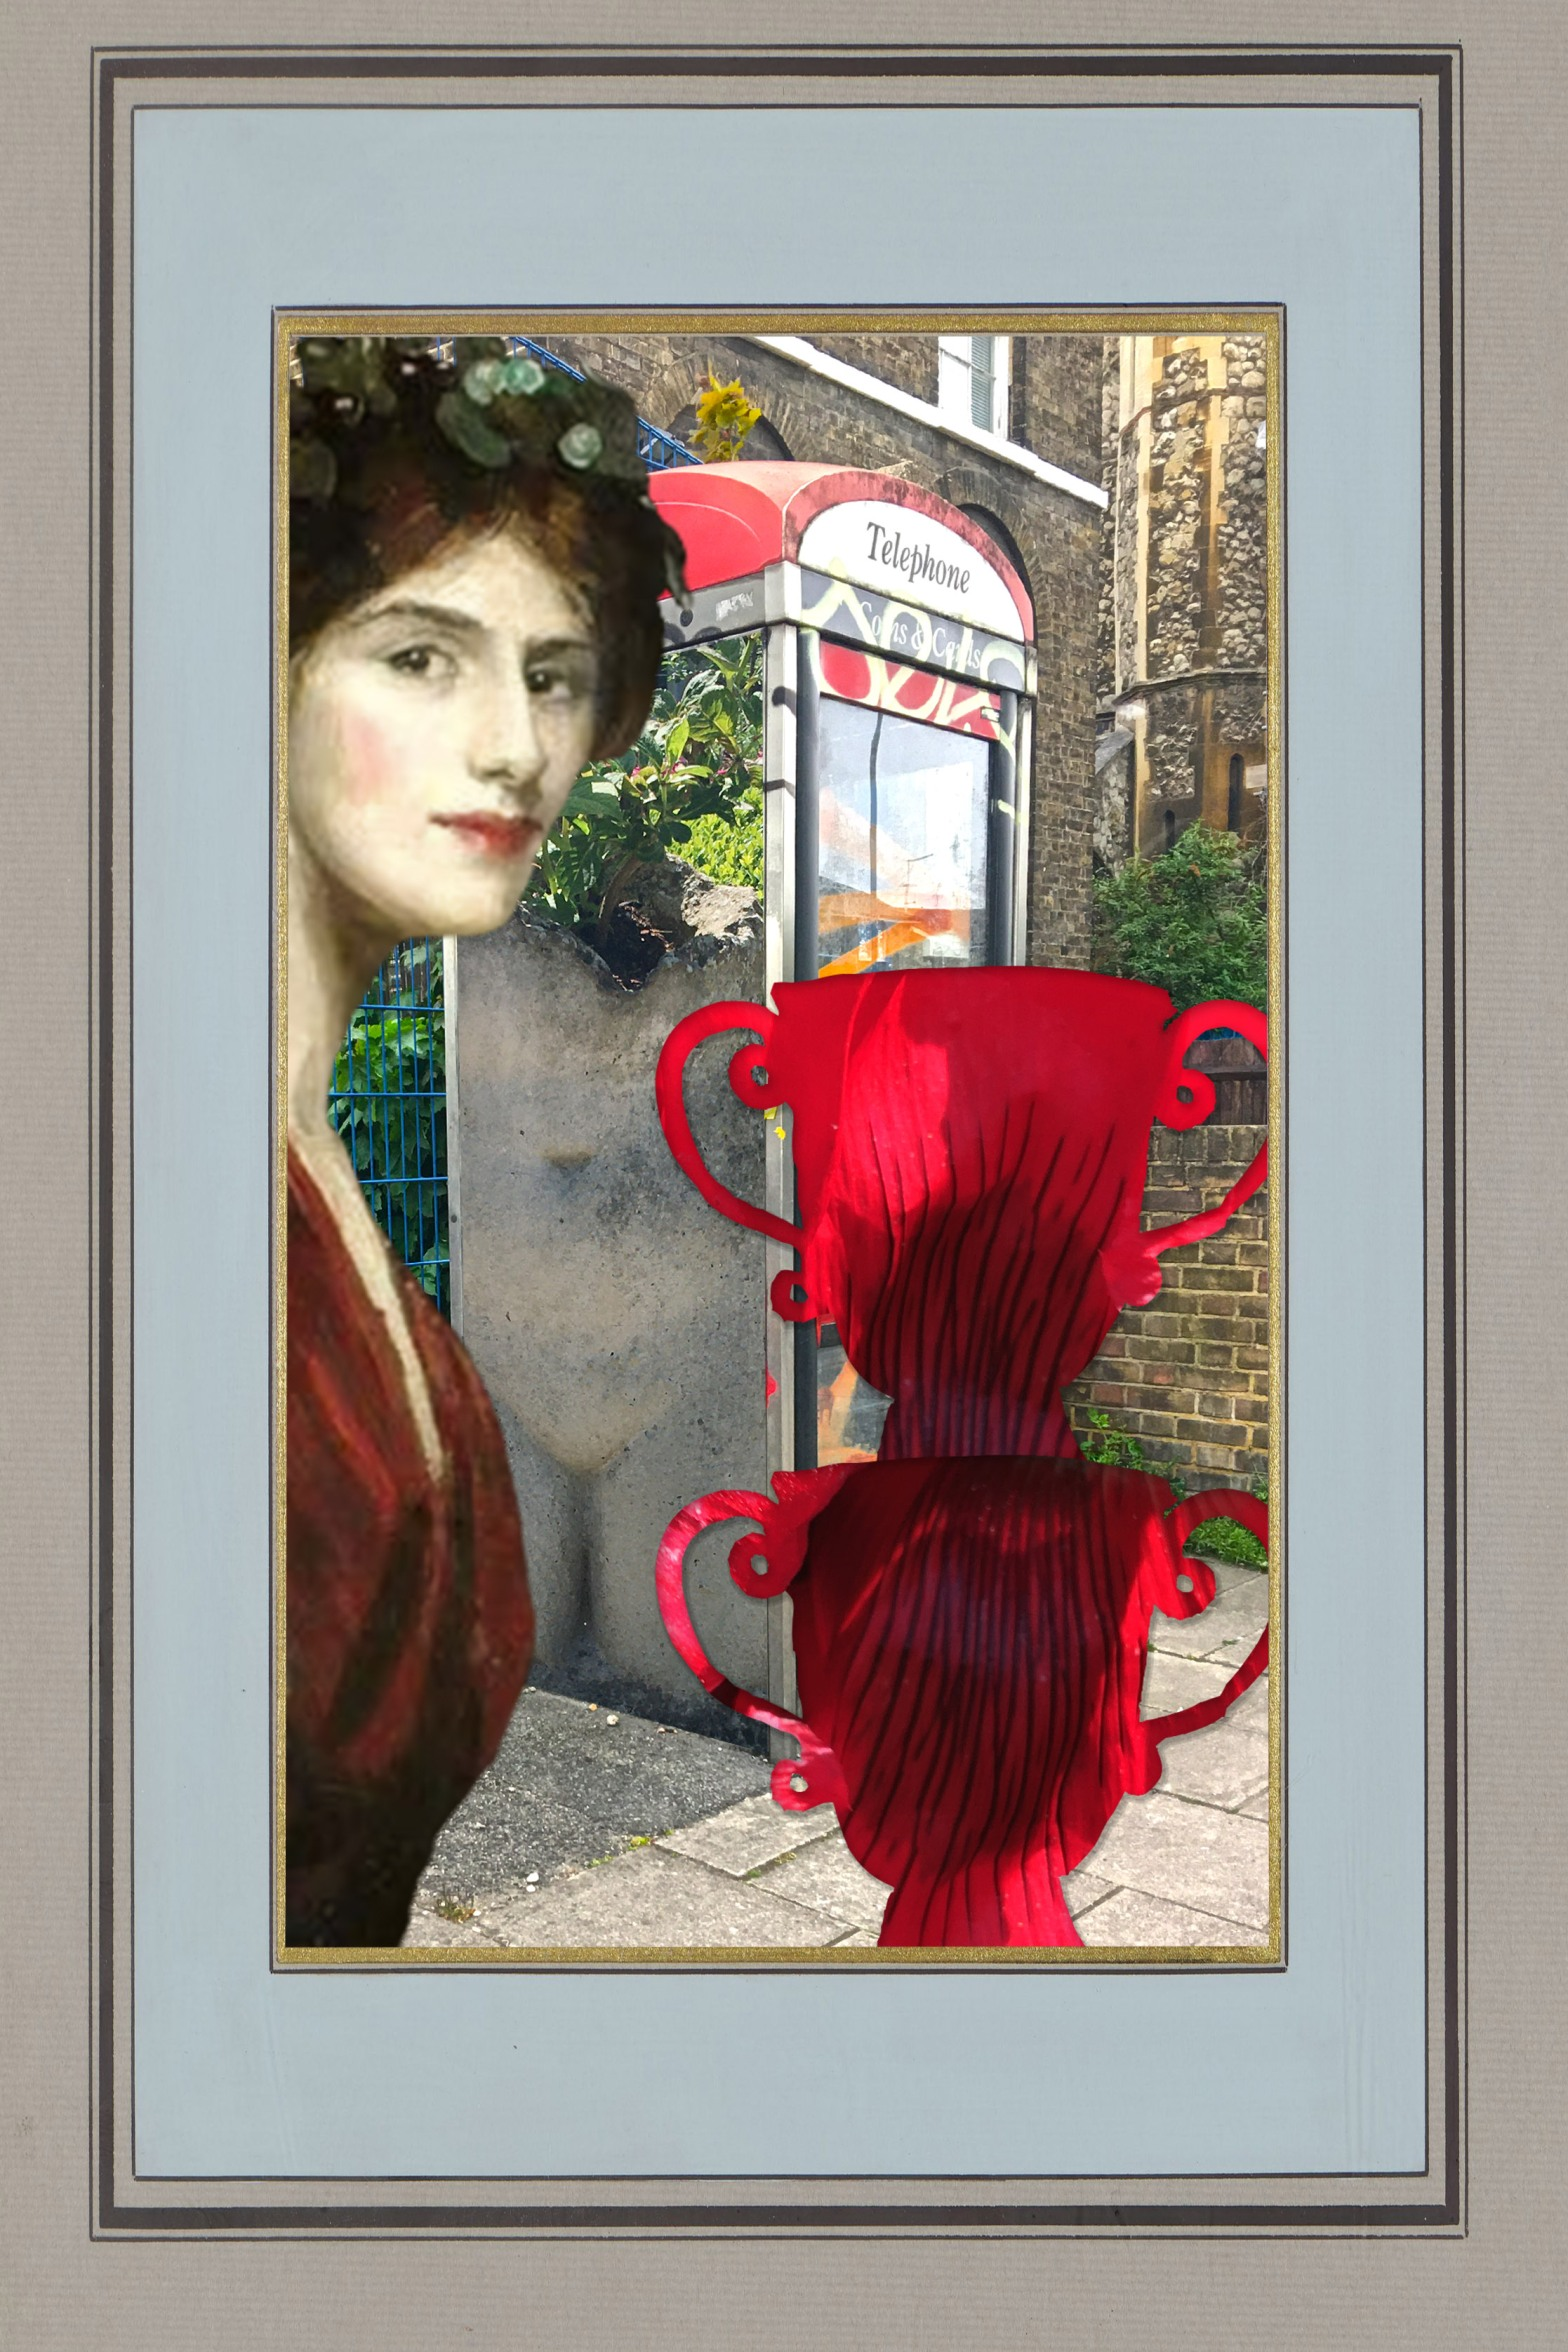 """John Lavery's """"Mrs. Ralph Peto as a Bacchanate"""" (1910) in front of a phone booth on Evelyn Street, Deptford, which has on it a female torso planter from in front of the Charleston Gift Shop. Next to the figure are two urns featuring poppies from Charleston Farm (Shannon R. Smith photograph urn sold at the Charleston Gift Shop). Everything is within a frame from the Birmingham Museums Trust (1984P24)."""